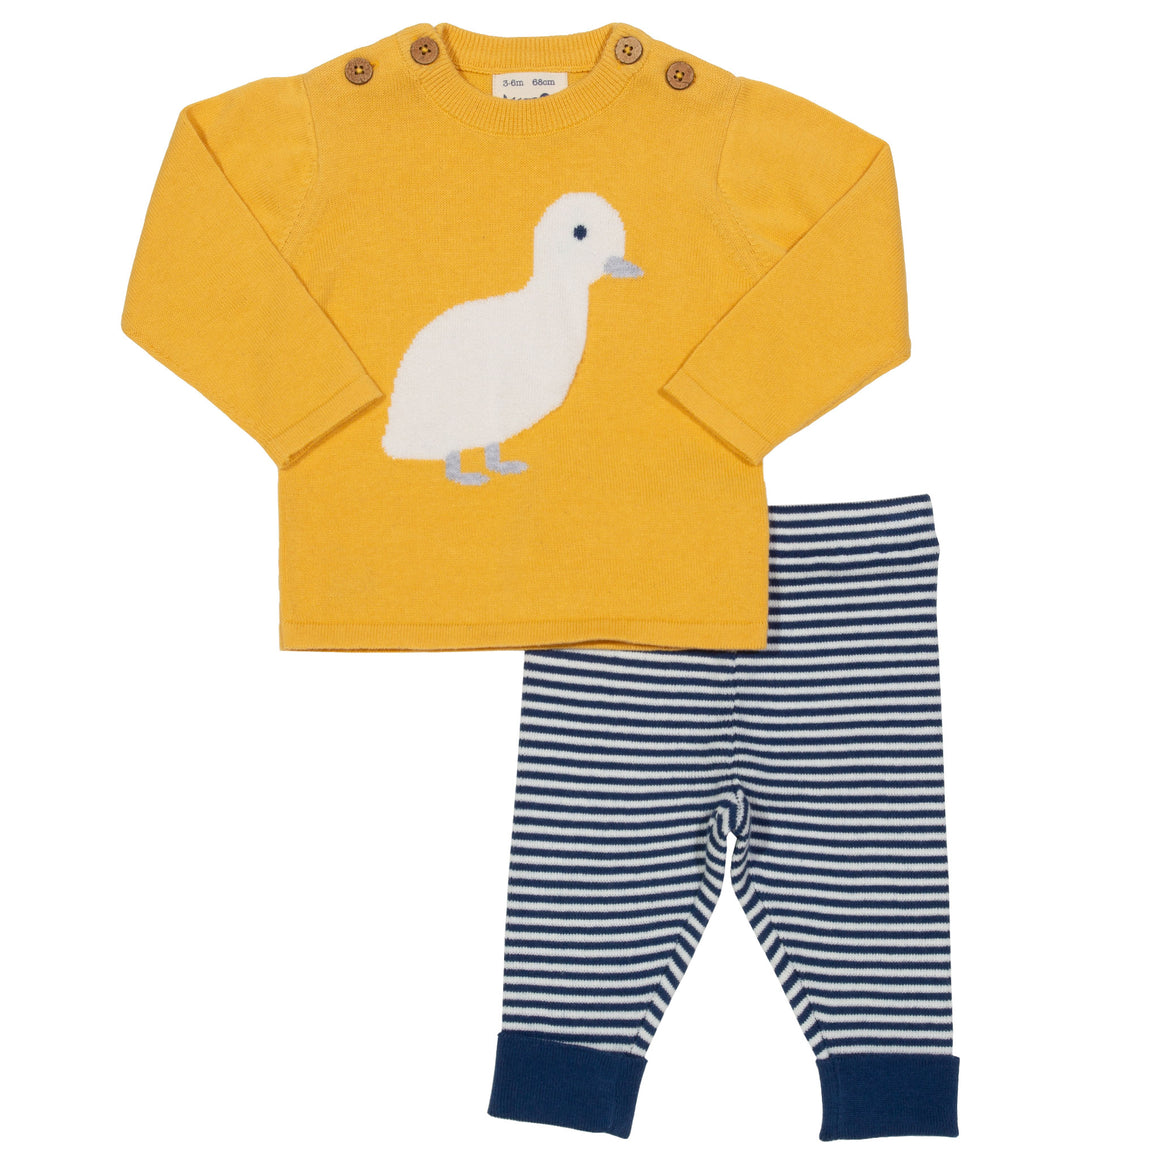 Duckling knit set